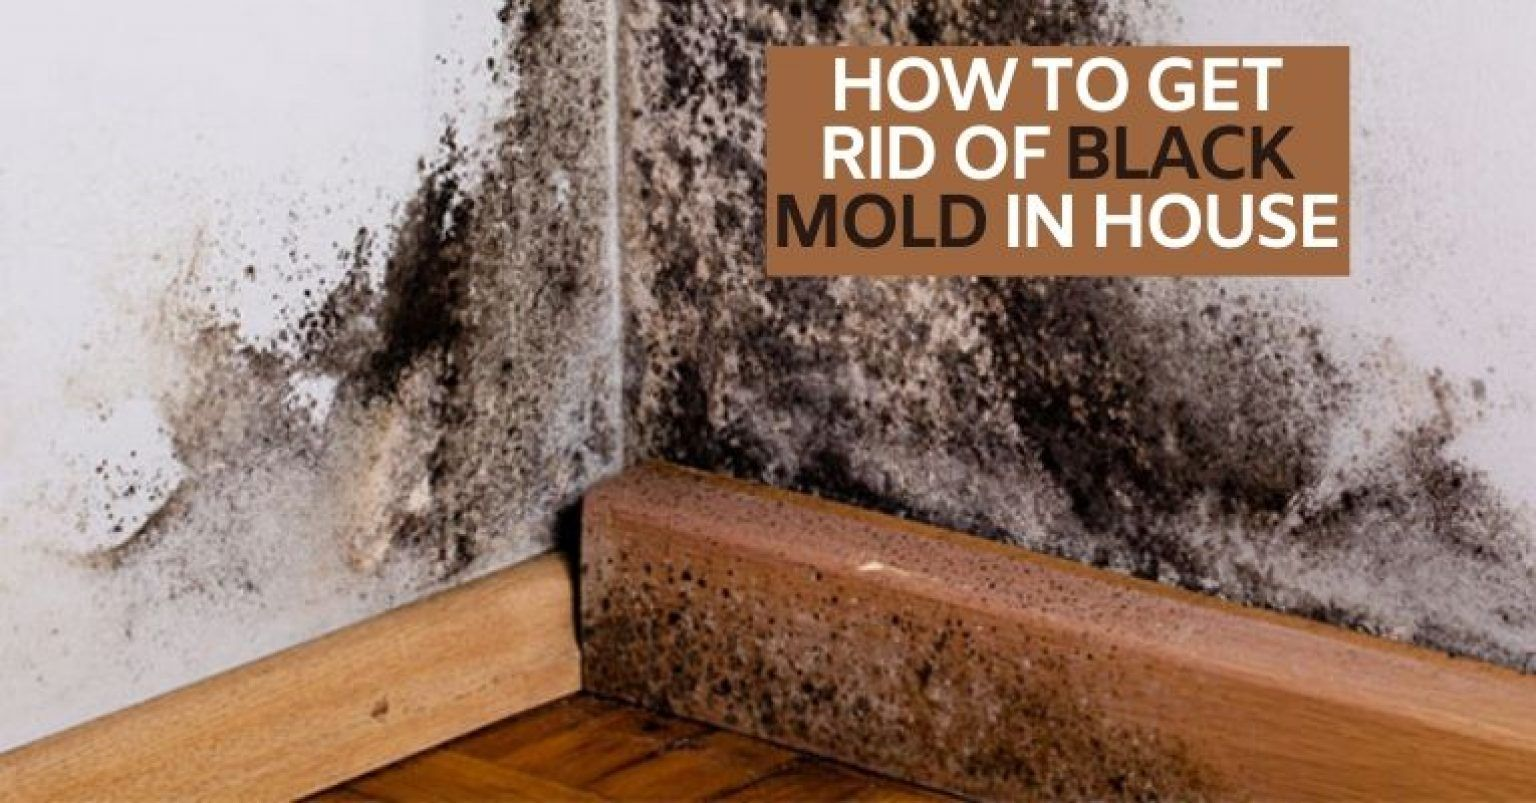 Pin by Christina Gast on Cleaning in 2020 House mold